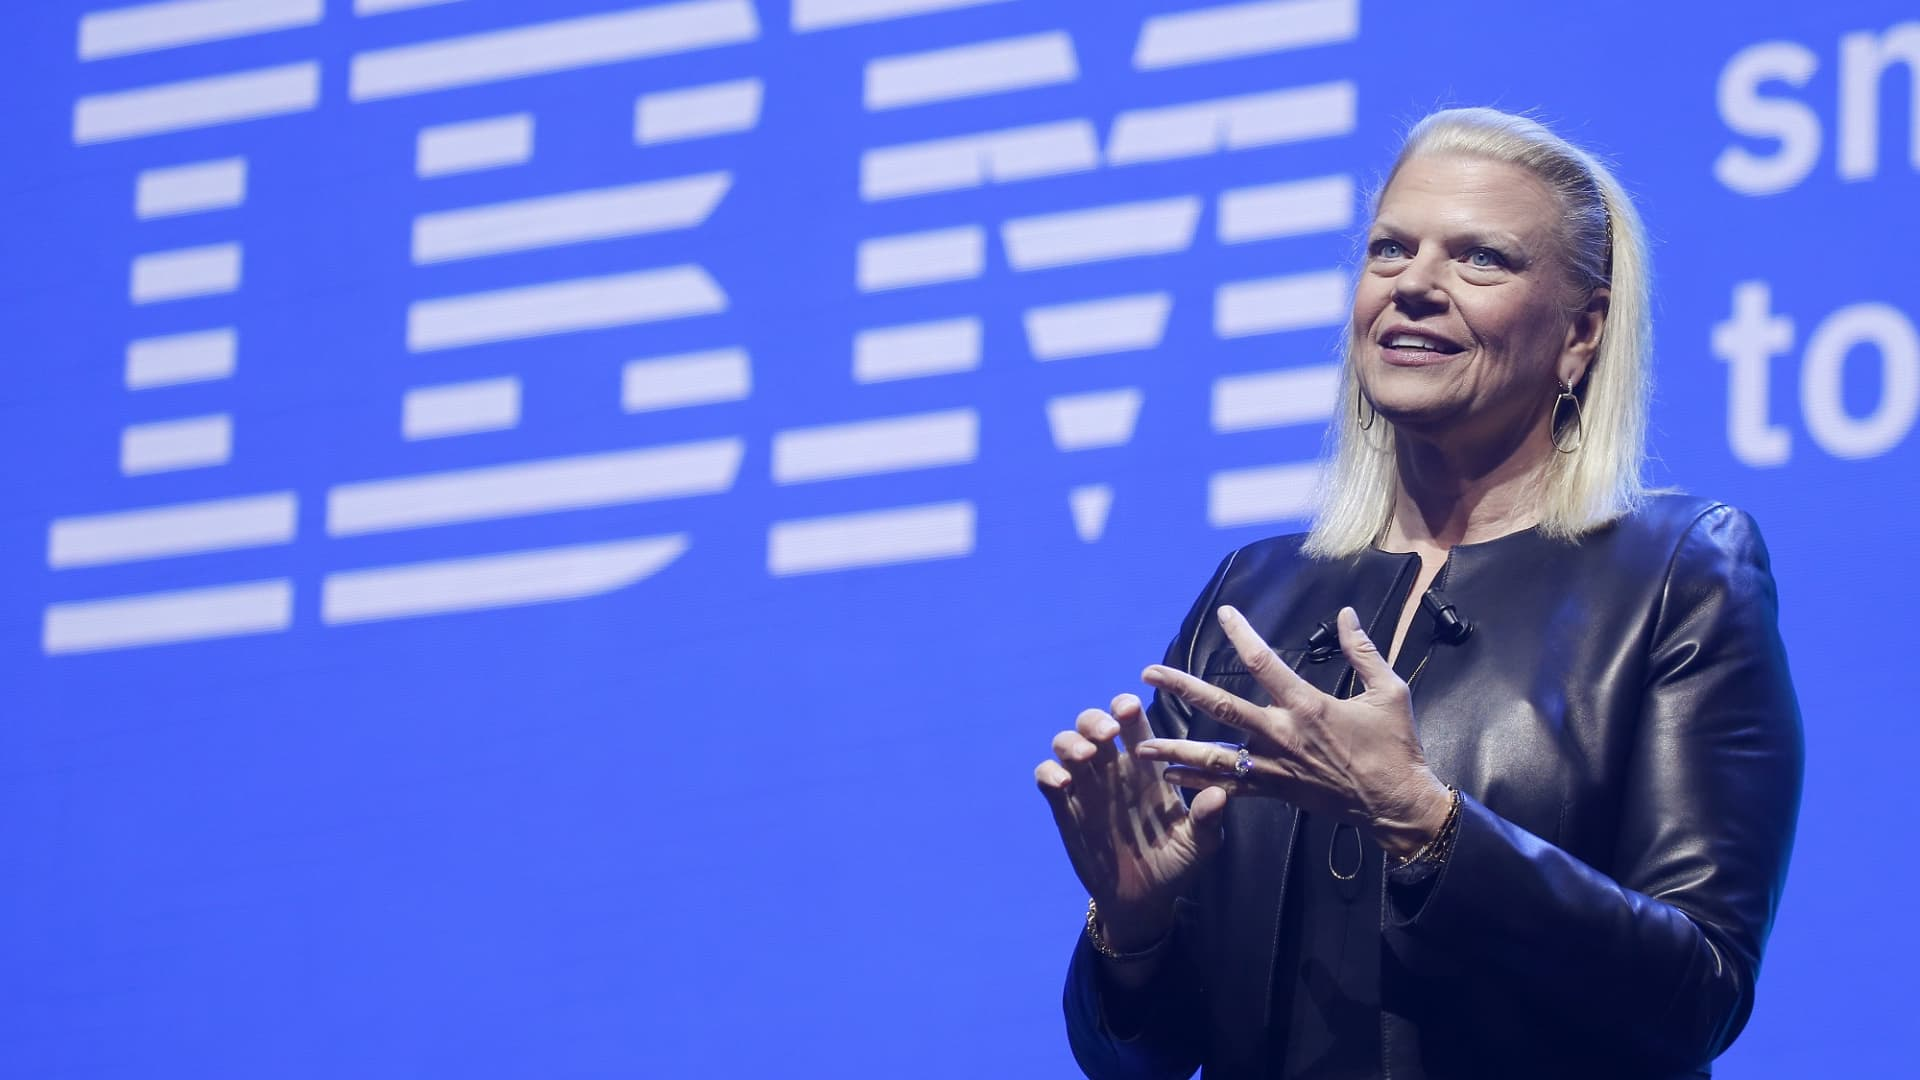 IBM President and CEO Virginia Rometty delivers a speech to participants during the 4th edition of the Viva Technology show at Parc des Expositions Porte de Versailles on May 16, 2019 in Paris, France.